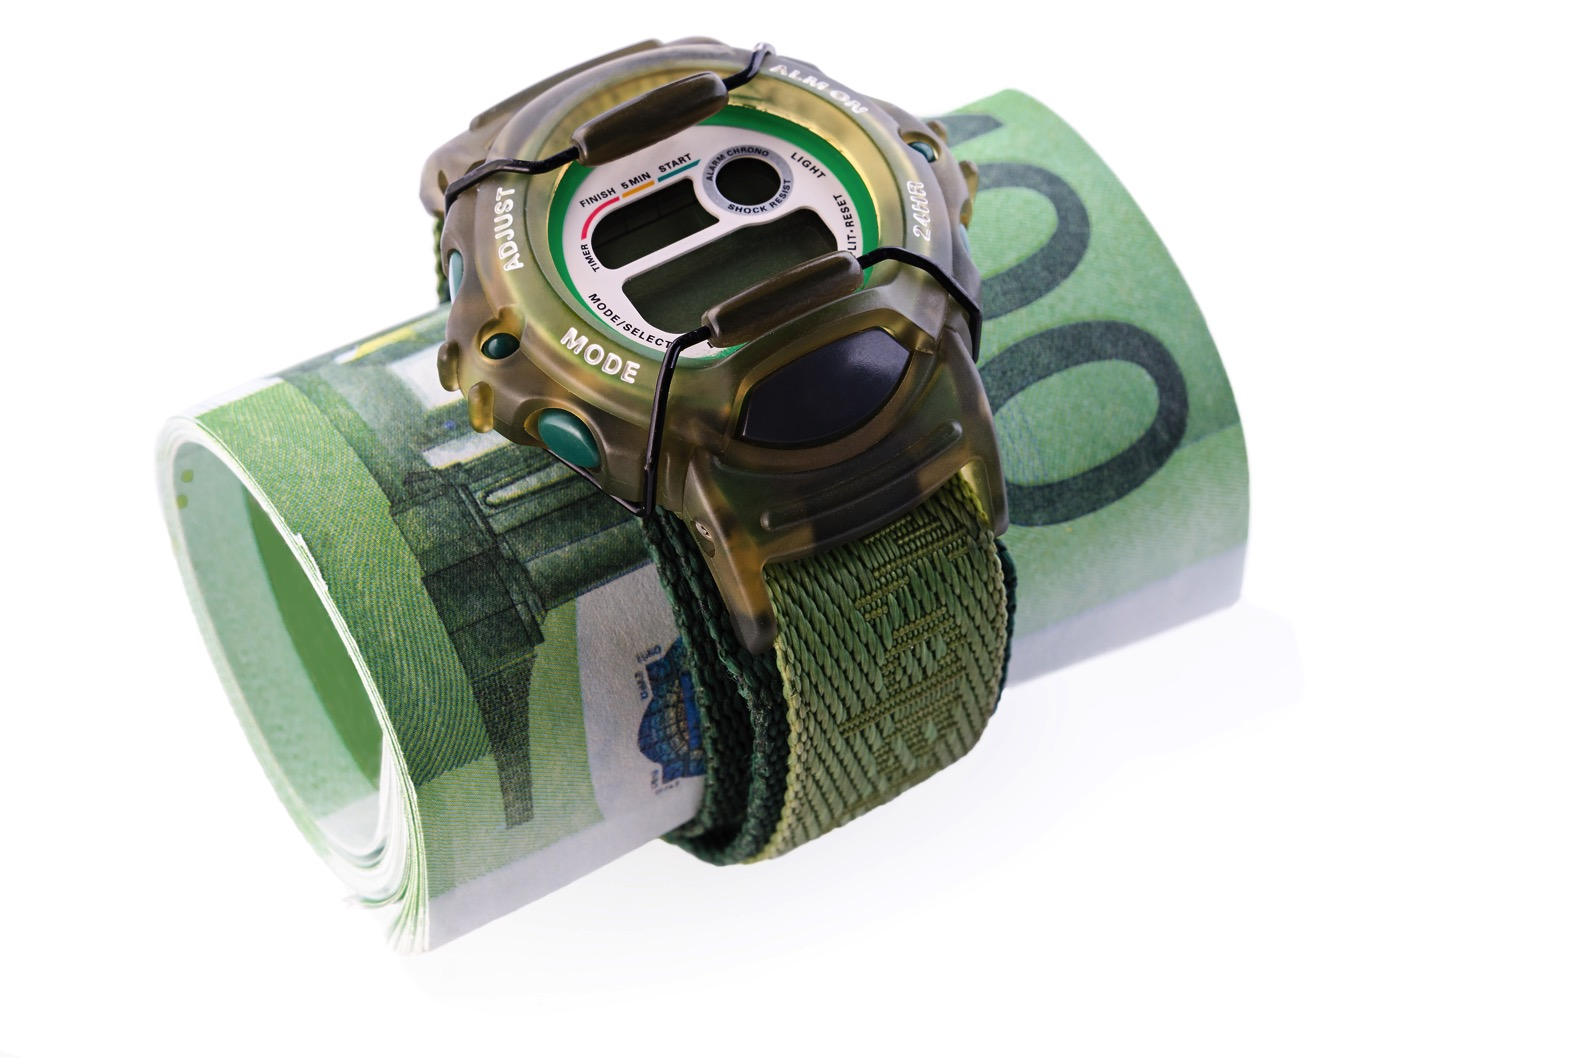 Watches and banknotes PDPDME9